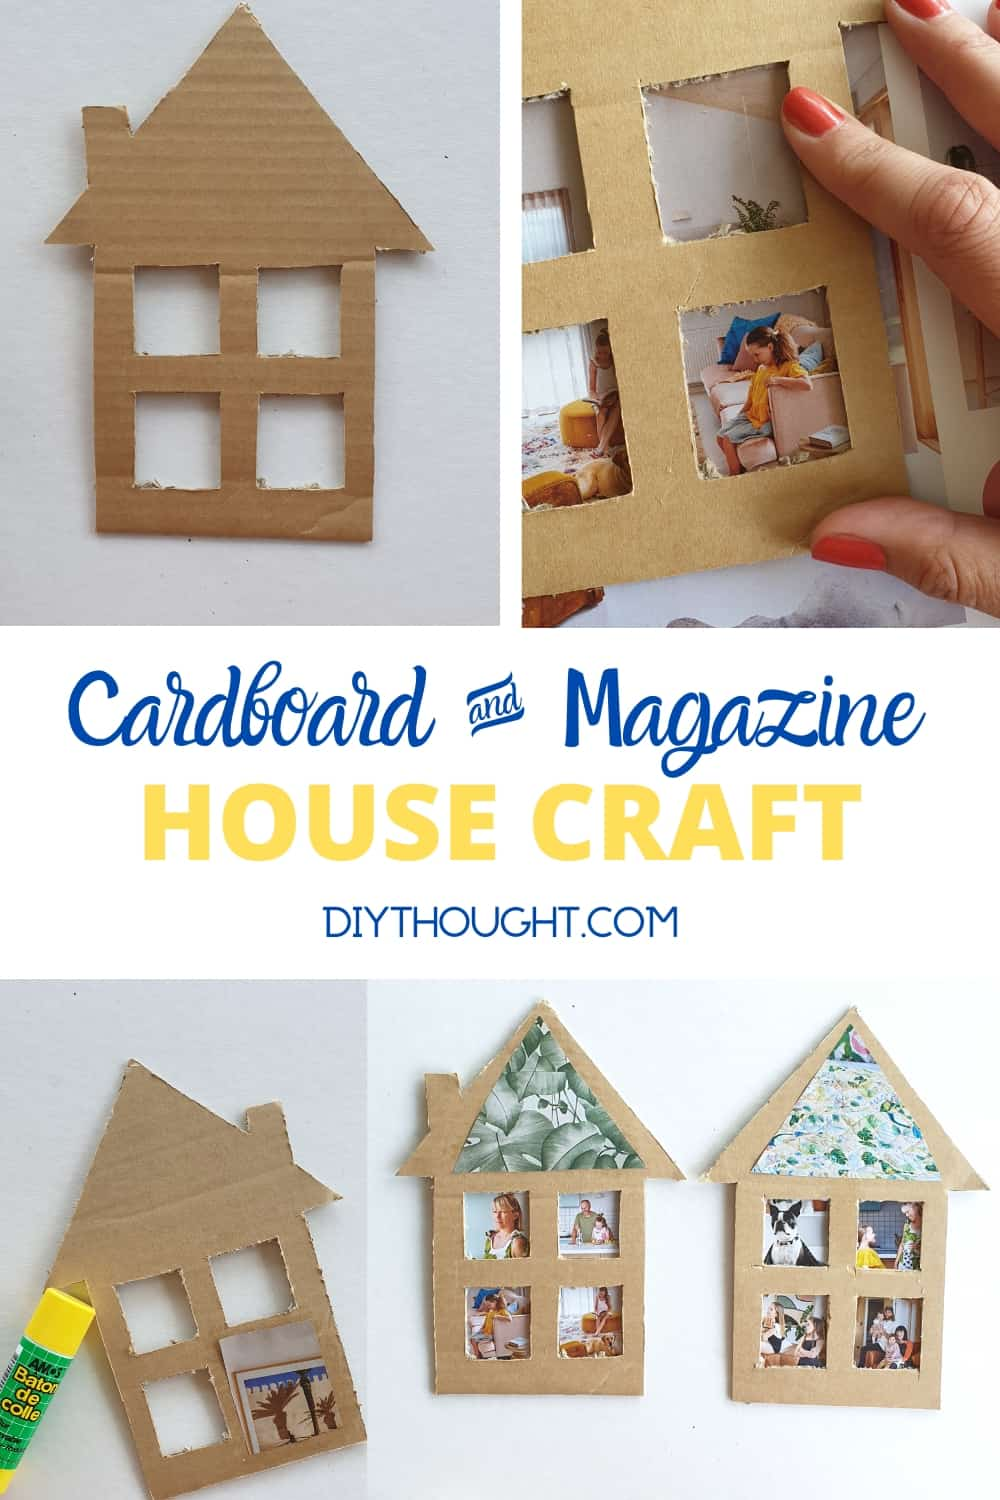 DIY House Craft from magazines and a box